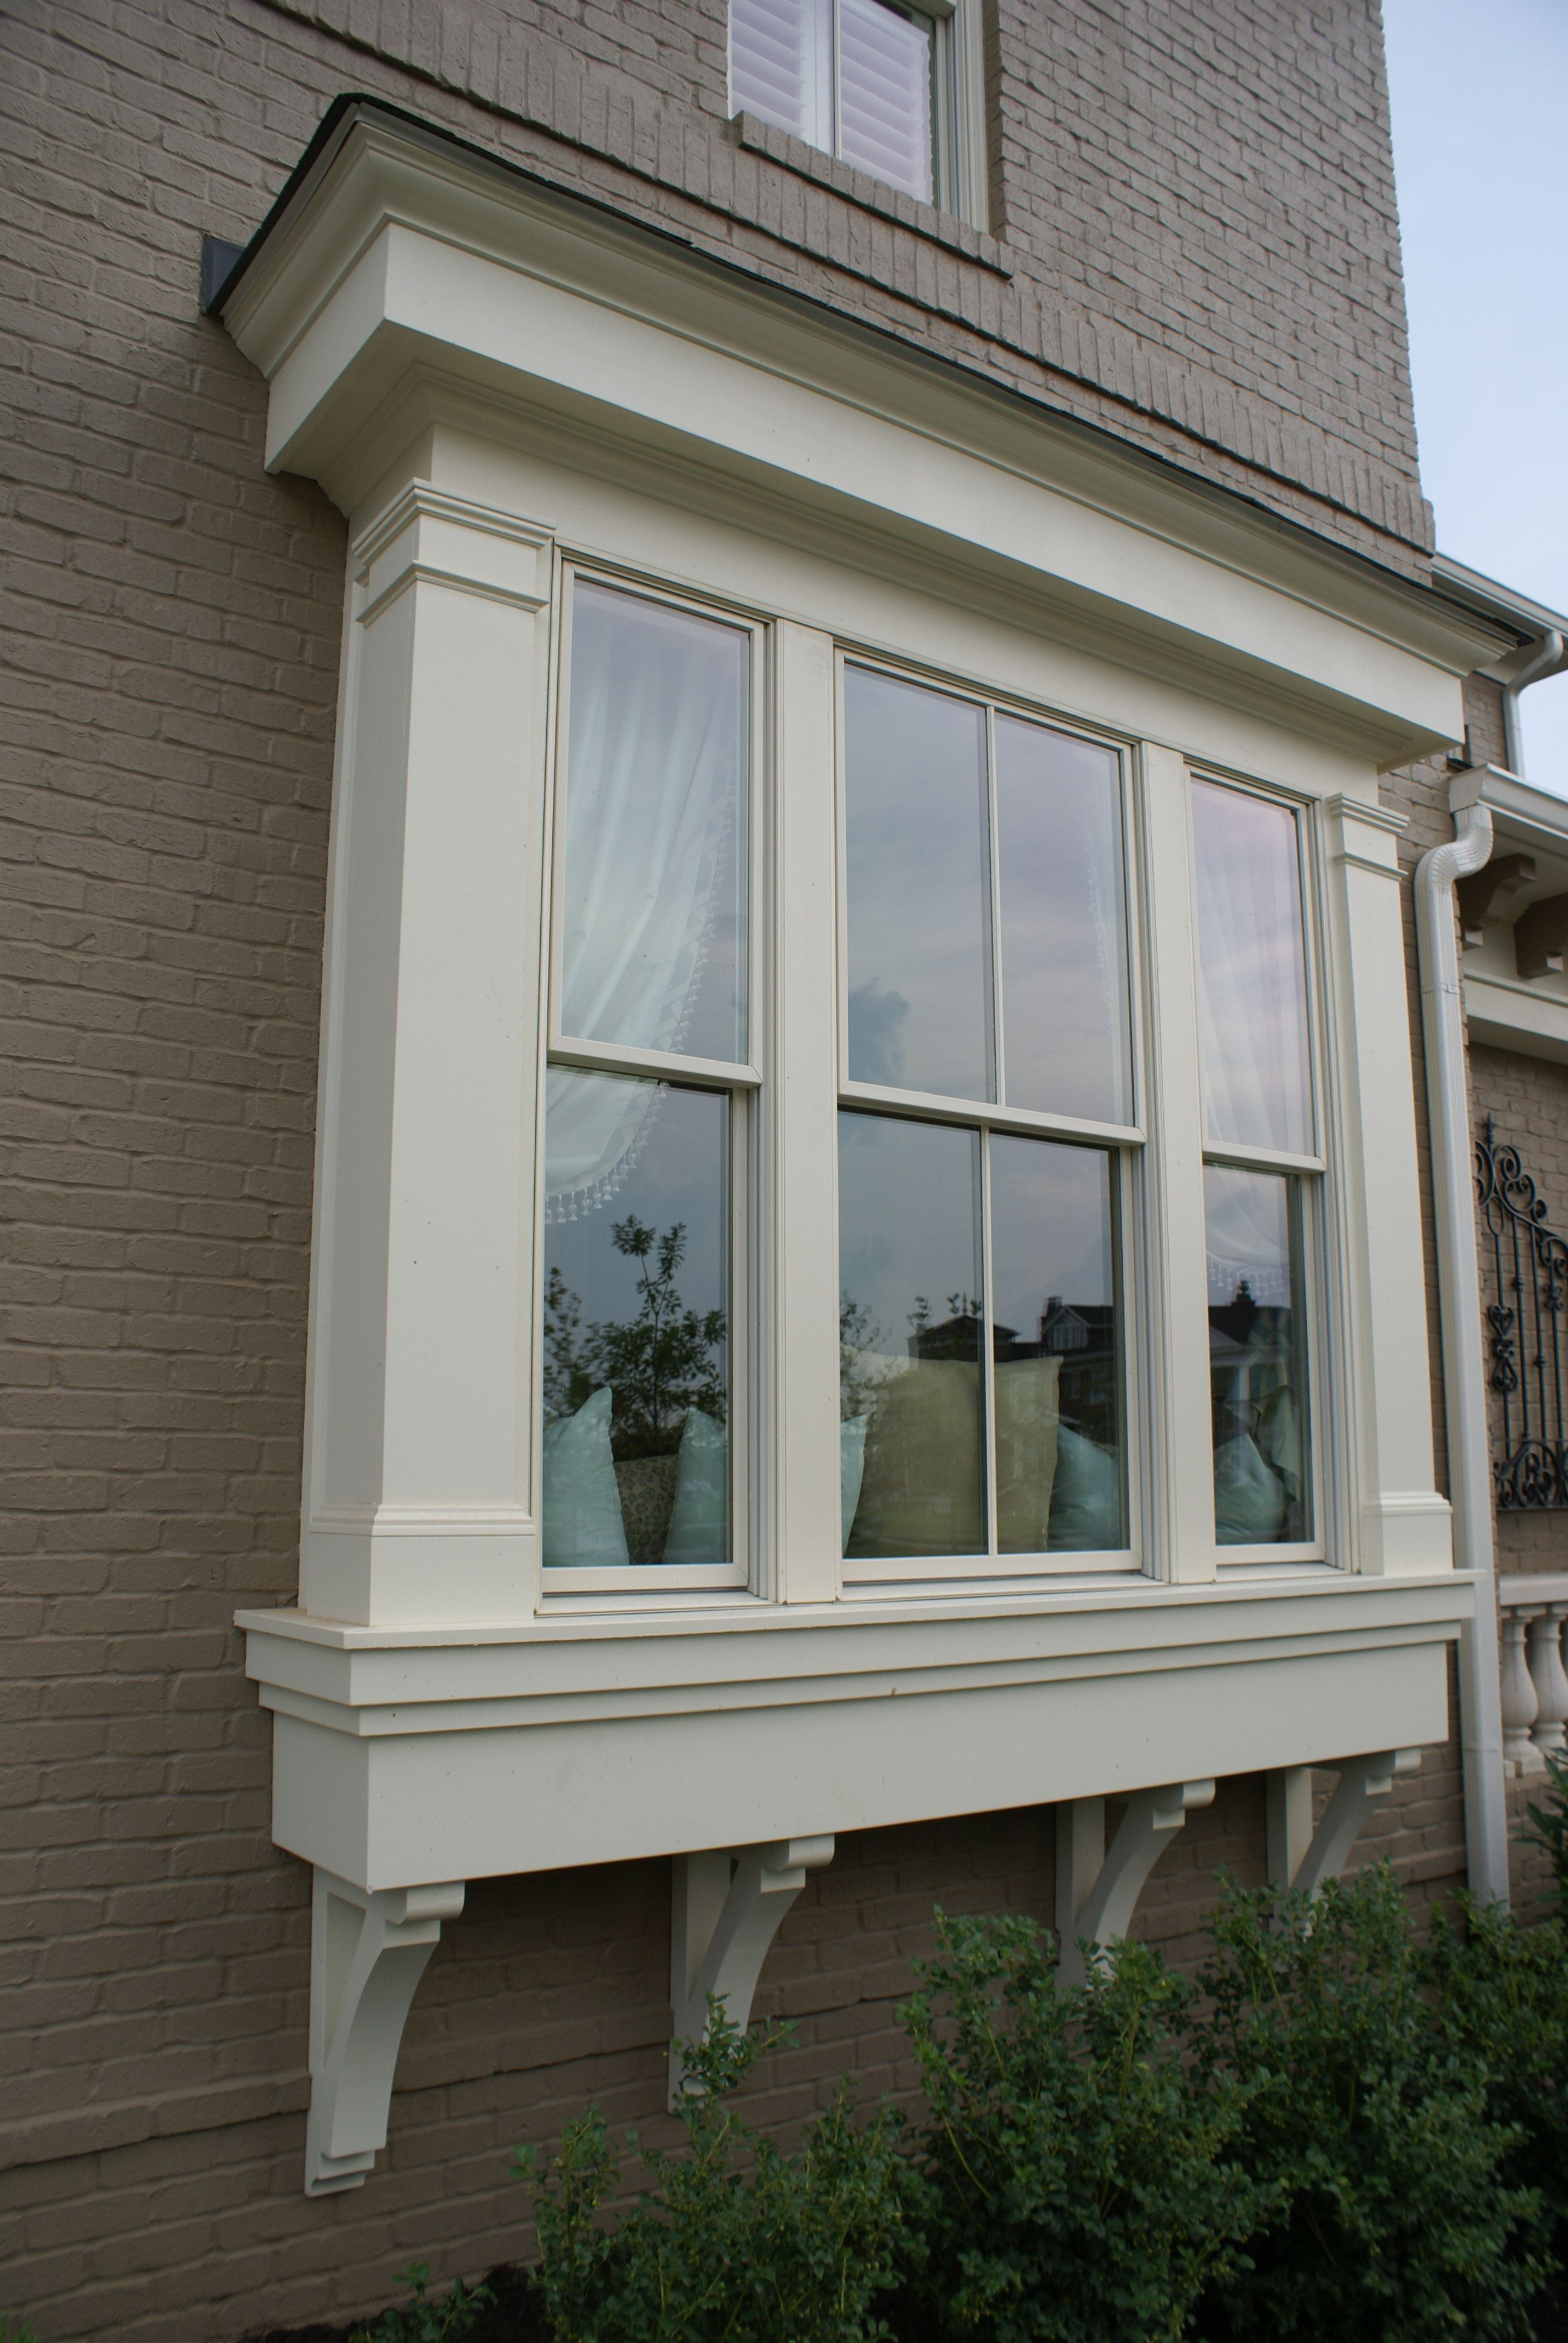 Kitchen window molding  kitchen bump out ideas  google search  curb appeal  pinterest